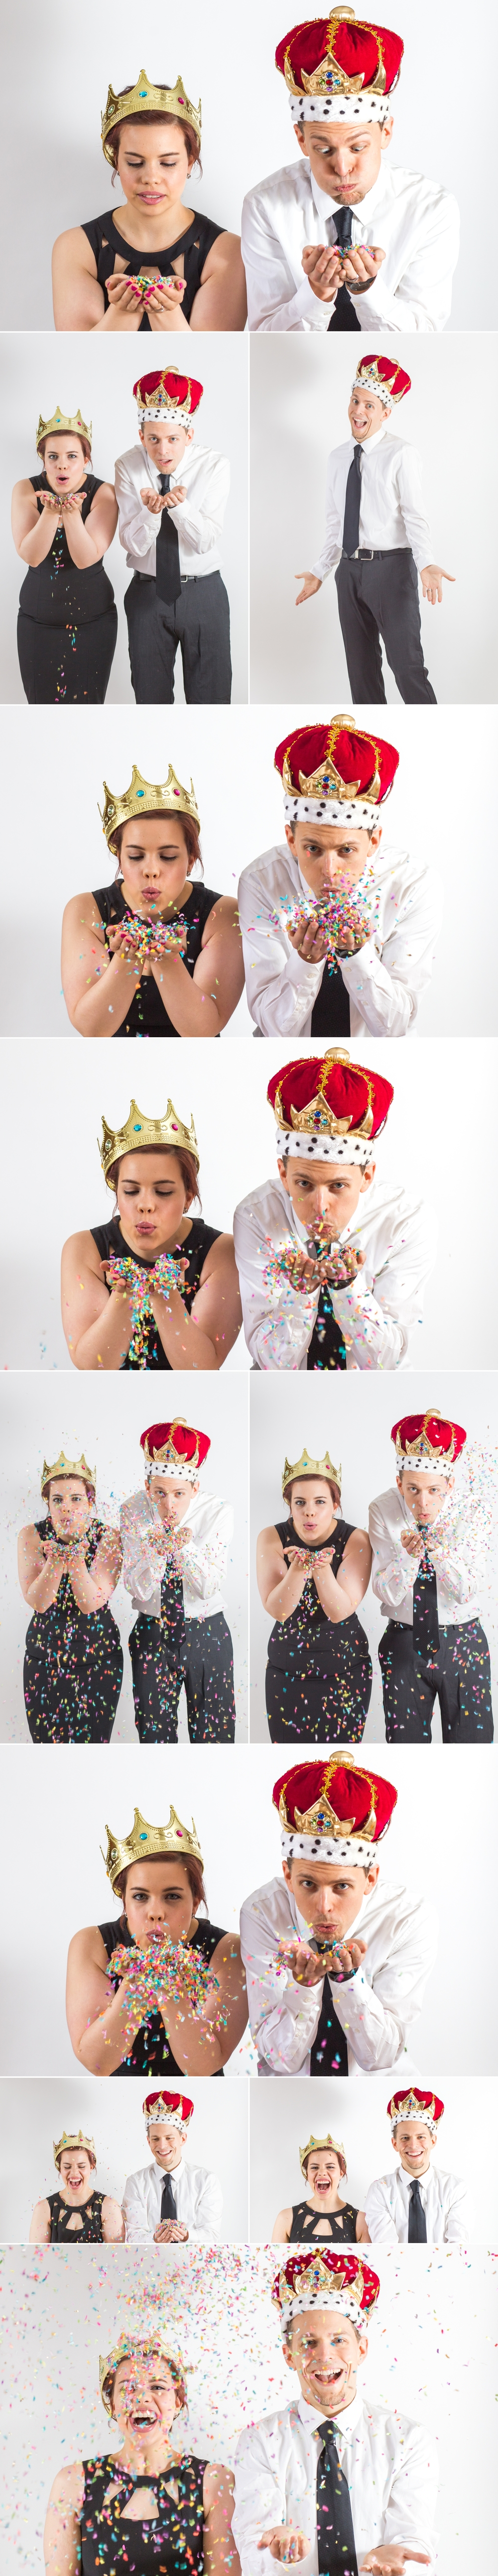 The Confetti Bar Confetti King and Queen Wallingford Connecticut Shaina Lee Photography Connecticut Photographer Head Shots